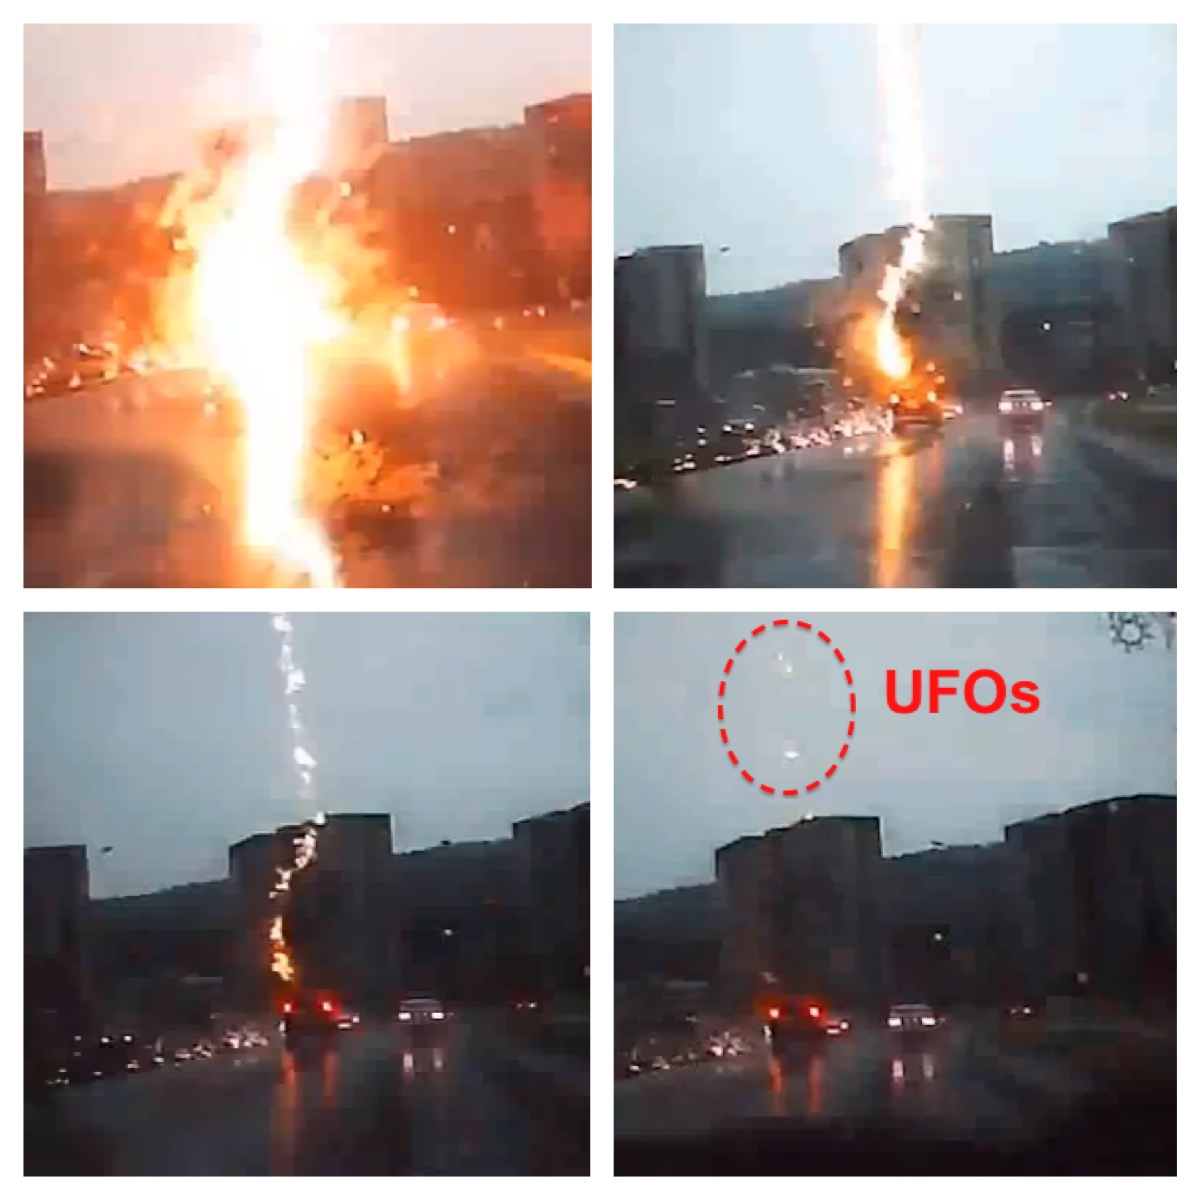 UFOs Seen A Second After Lightning Strikes SUV In Russia, Sept 2012